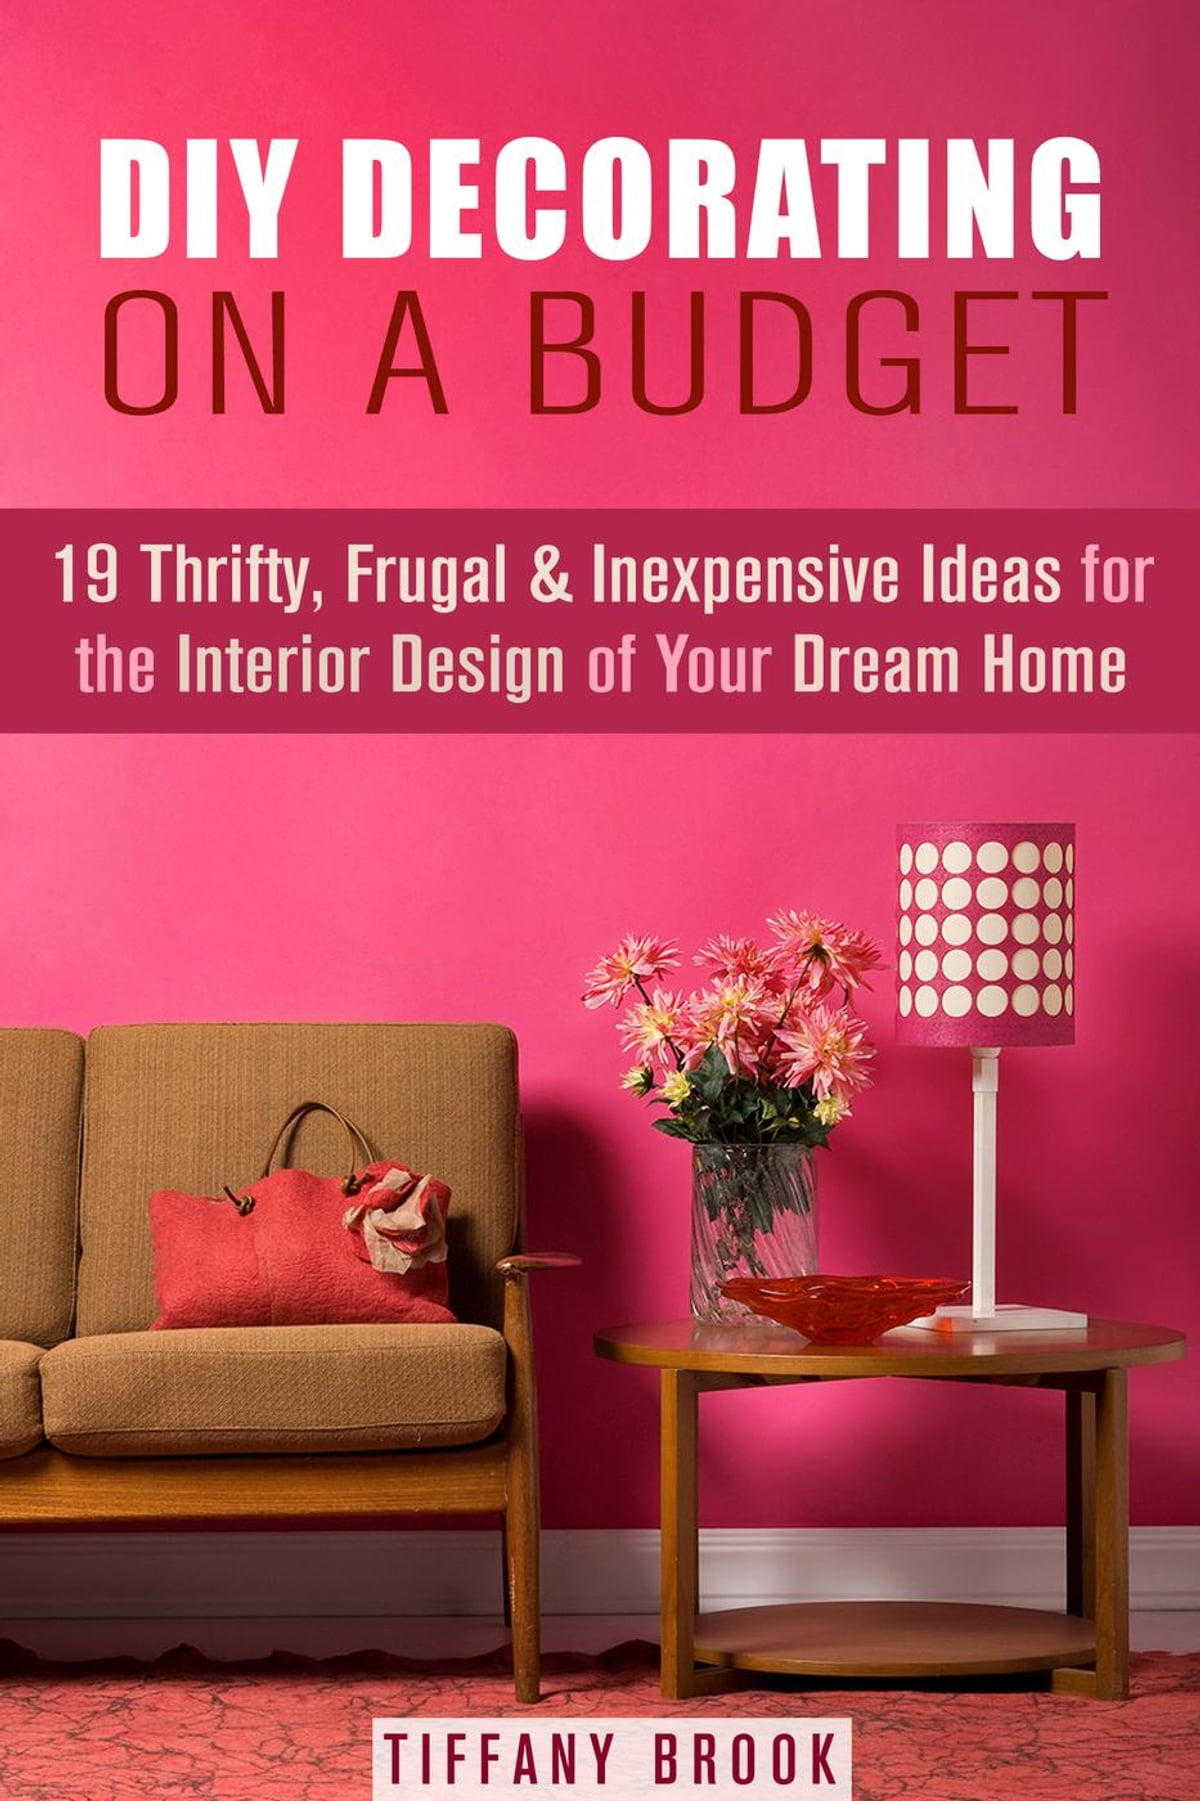 Image of: Diy Decorating On A Budget 19 Thrifty Frugal Inexpensive Ideas For The Interior Design Of Your Dream Home Ebook By Tiffany Brook Rakuten Kobo